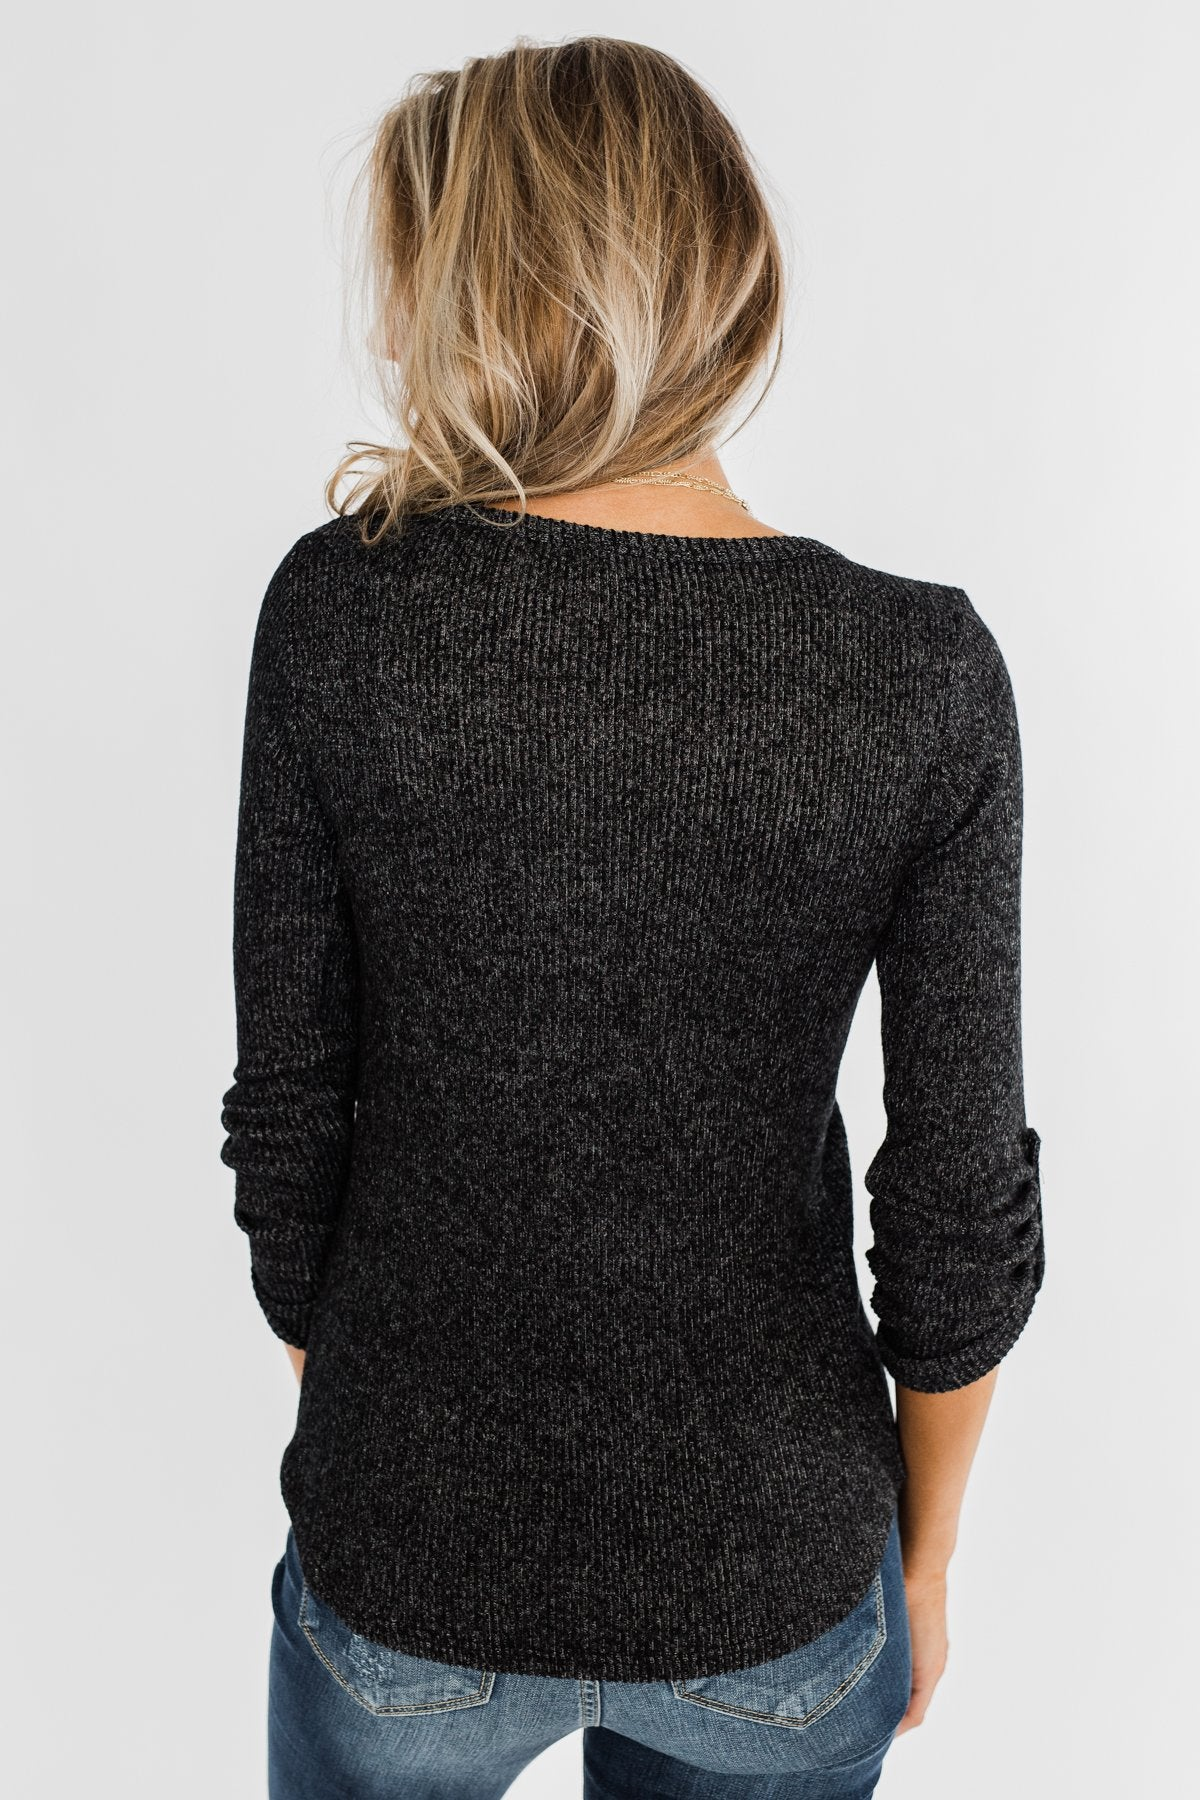 Starry Nights Ribbed Pocket Top- Black